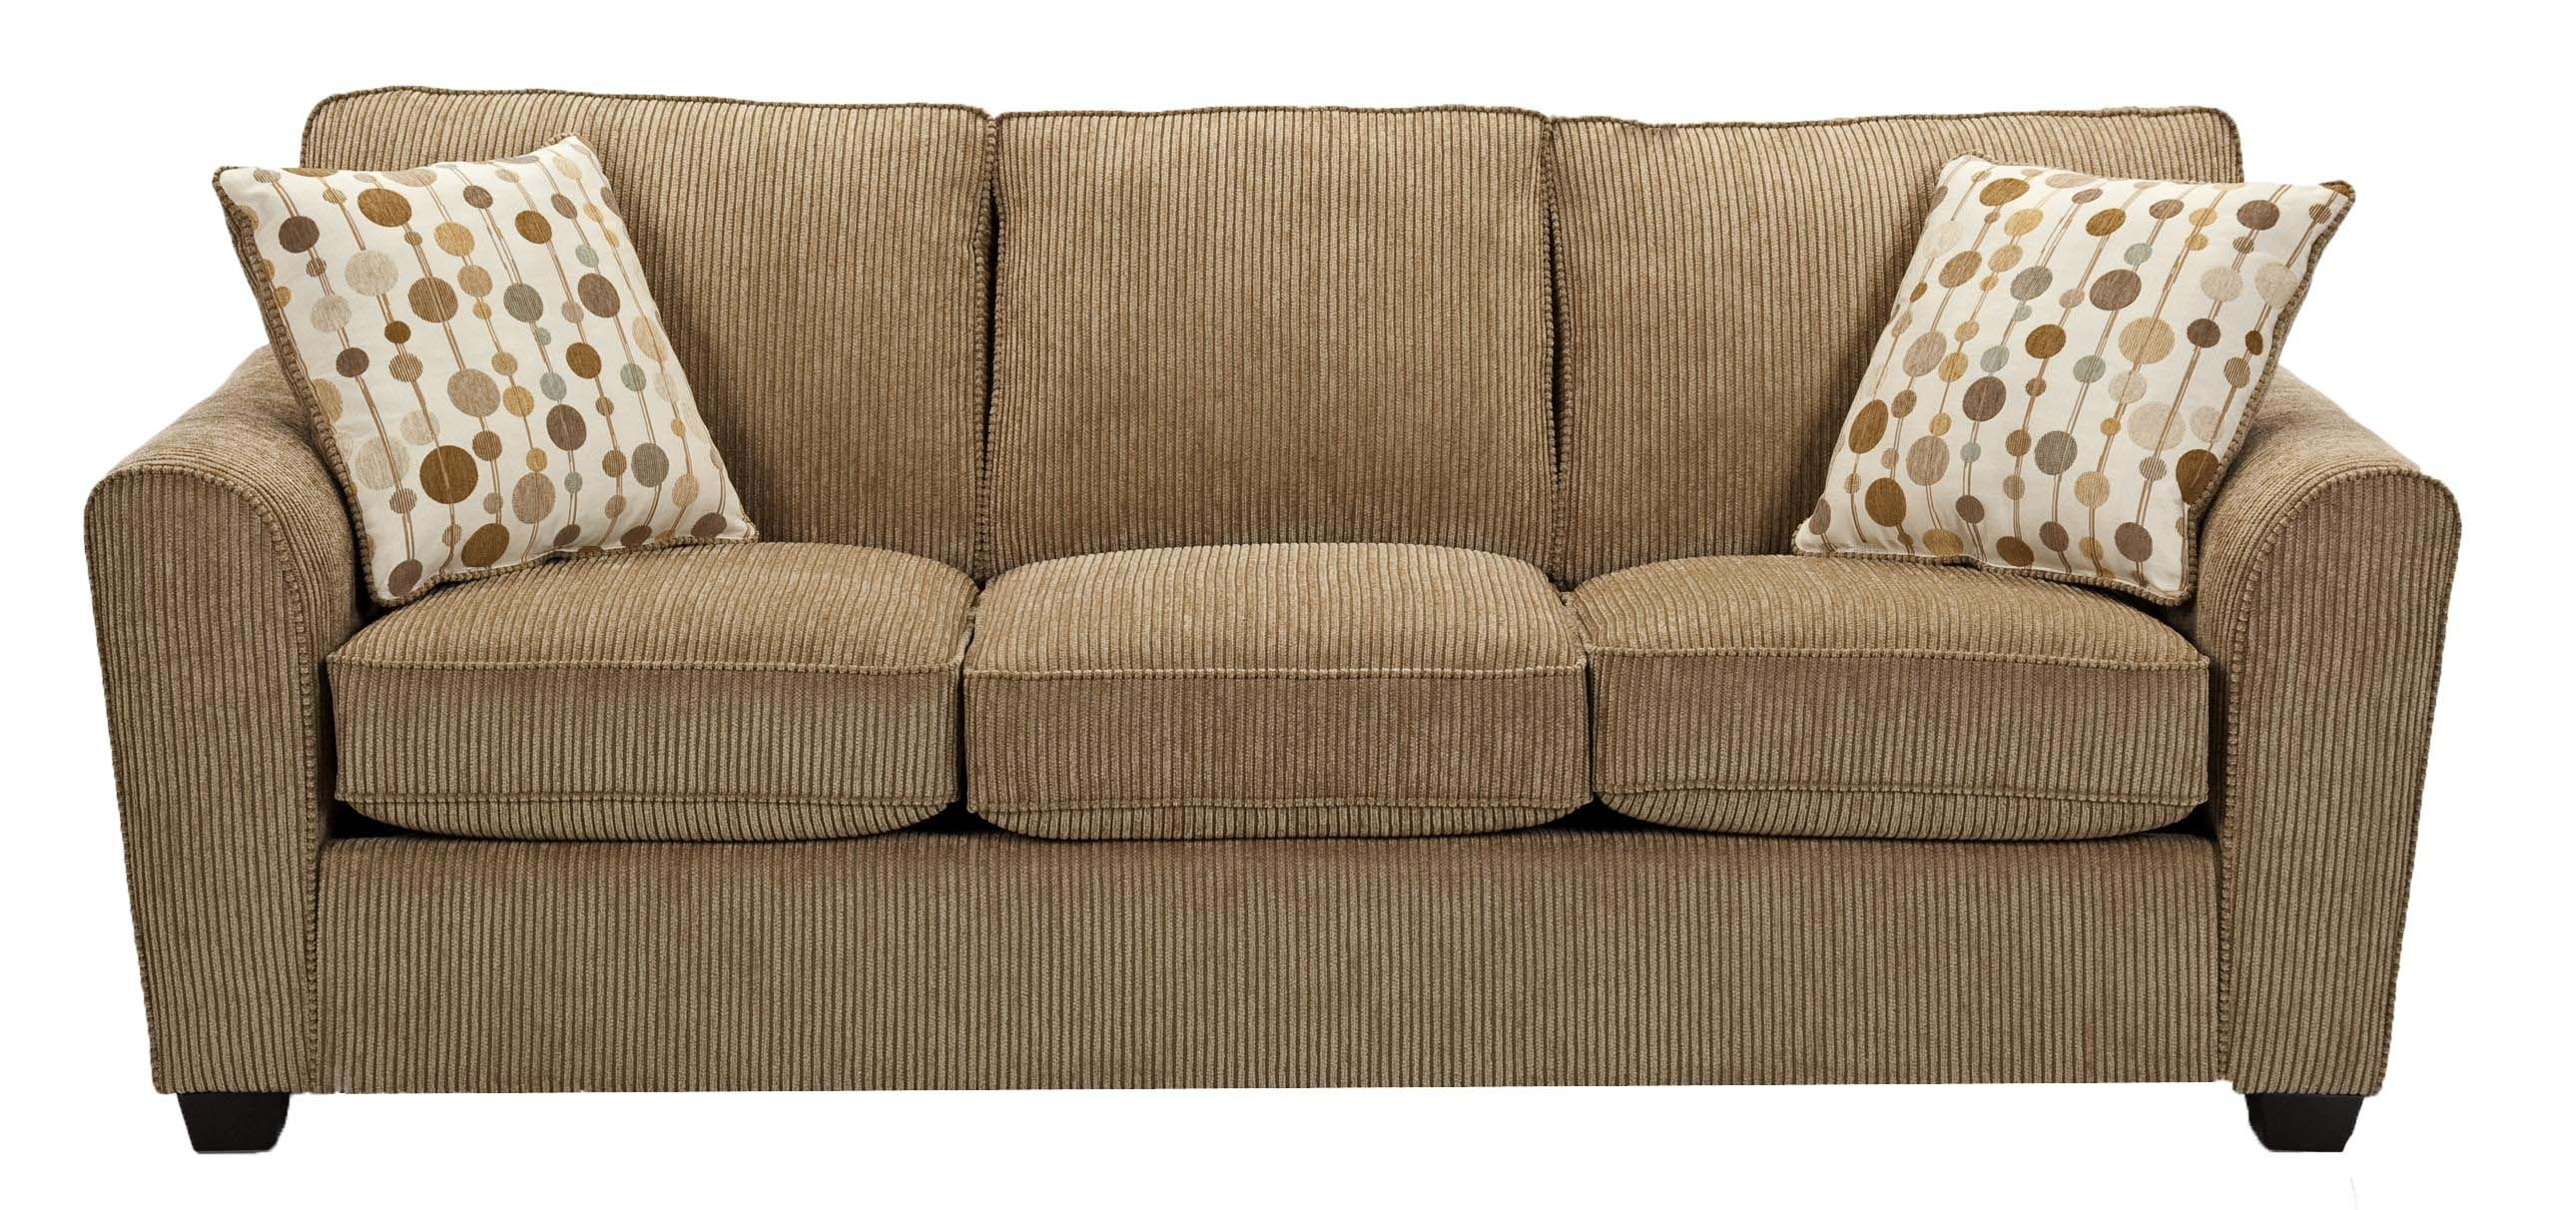 This Sofa In Windfall Army Danson Multi Is For Sale At City